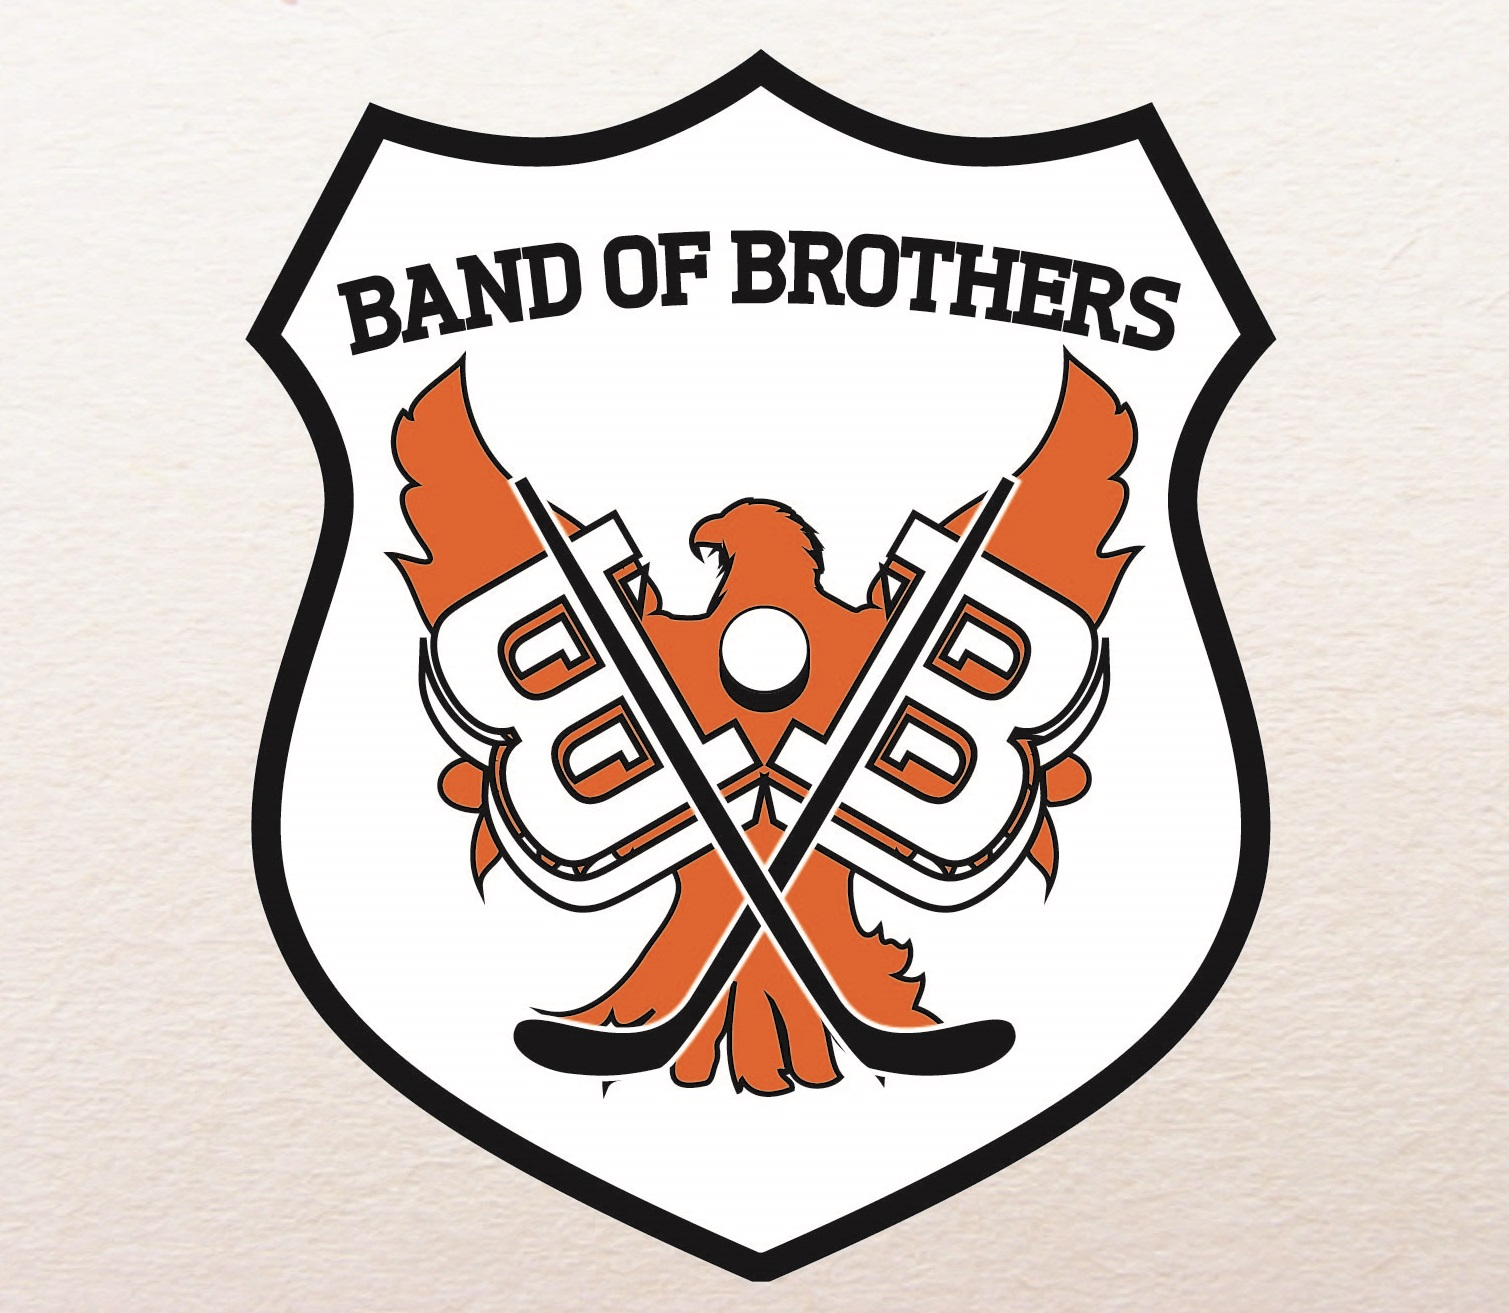 Logo Design by iwyn - Entry No. 38 in the Logo Design Contest Inspiring Logo Design for Band of Brothers.